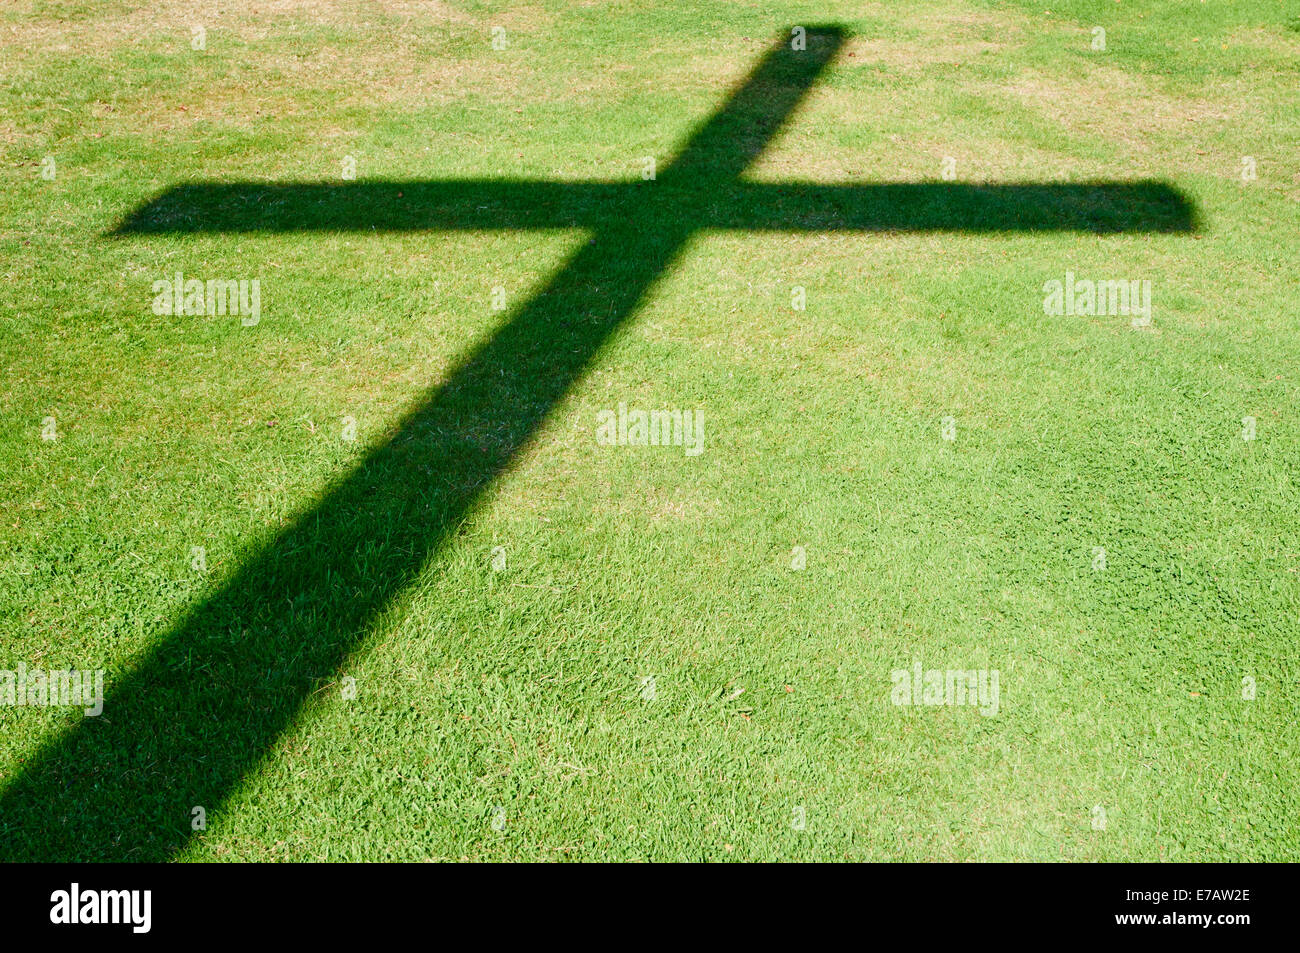 Shadow Of A Cross On Grass Lawn At The German Military Cemetery Cannock Staffordshire UK - Stock Image